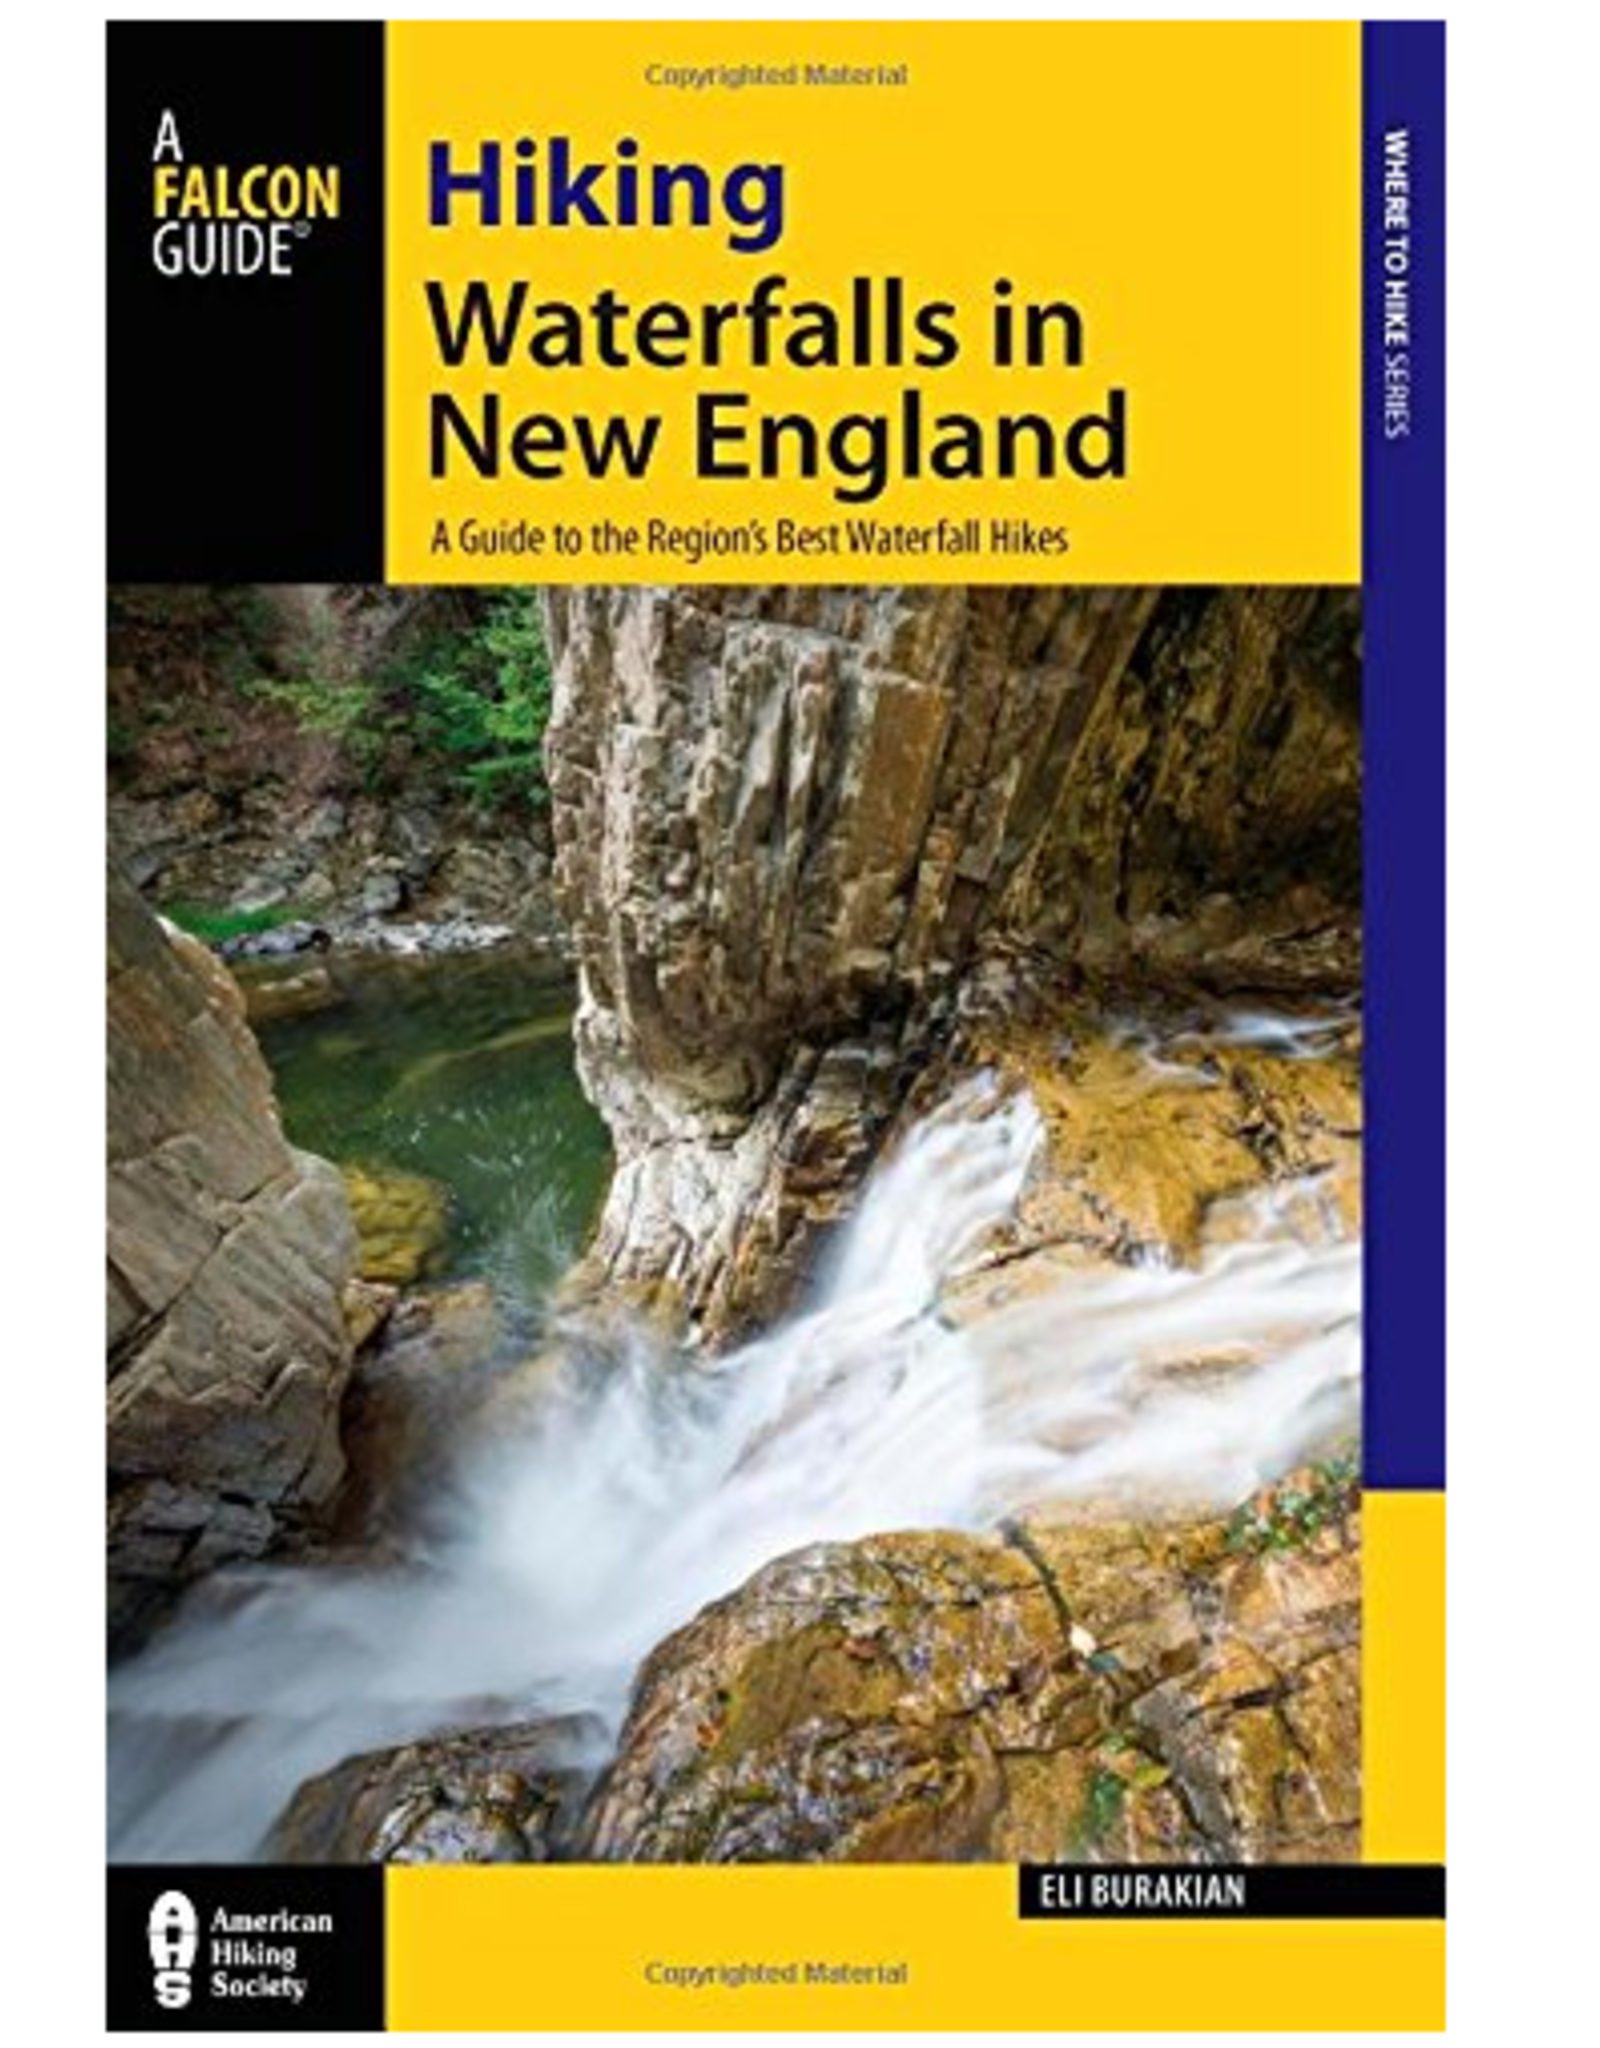 Falcon Guides Hiking Waterfalls in New England